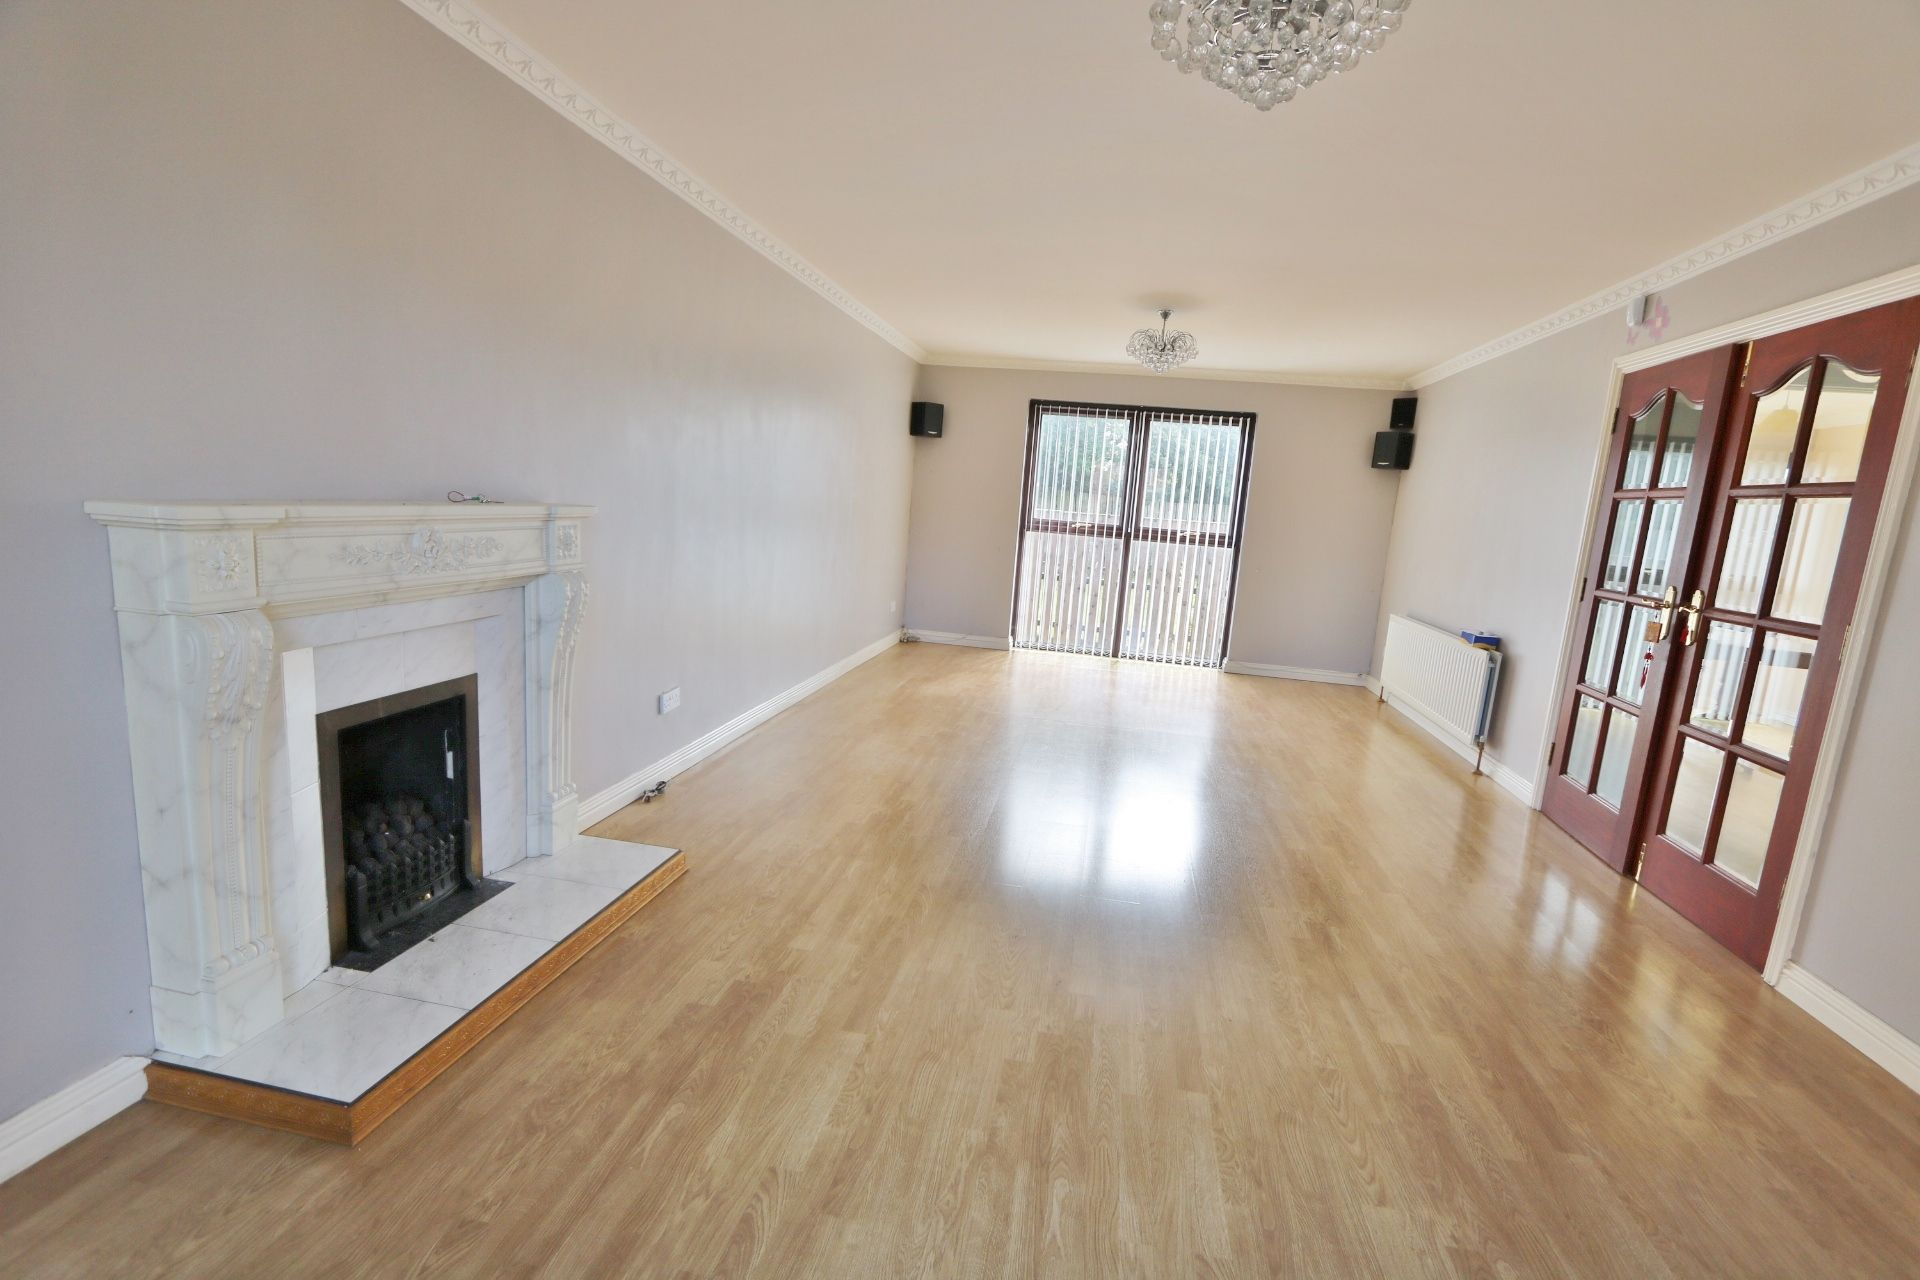 4 bedroom detached house Under Offer in Antrim - Photograph 2